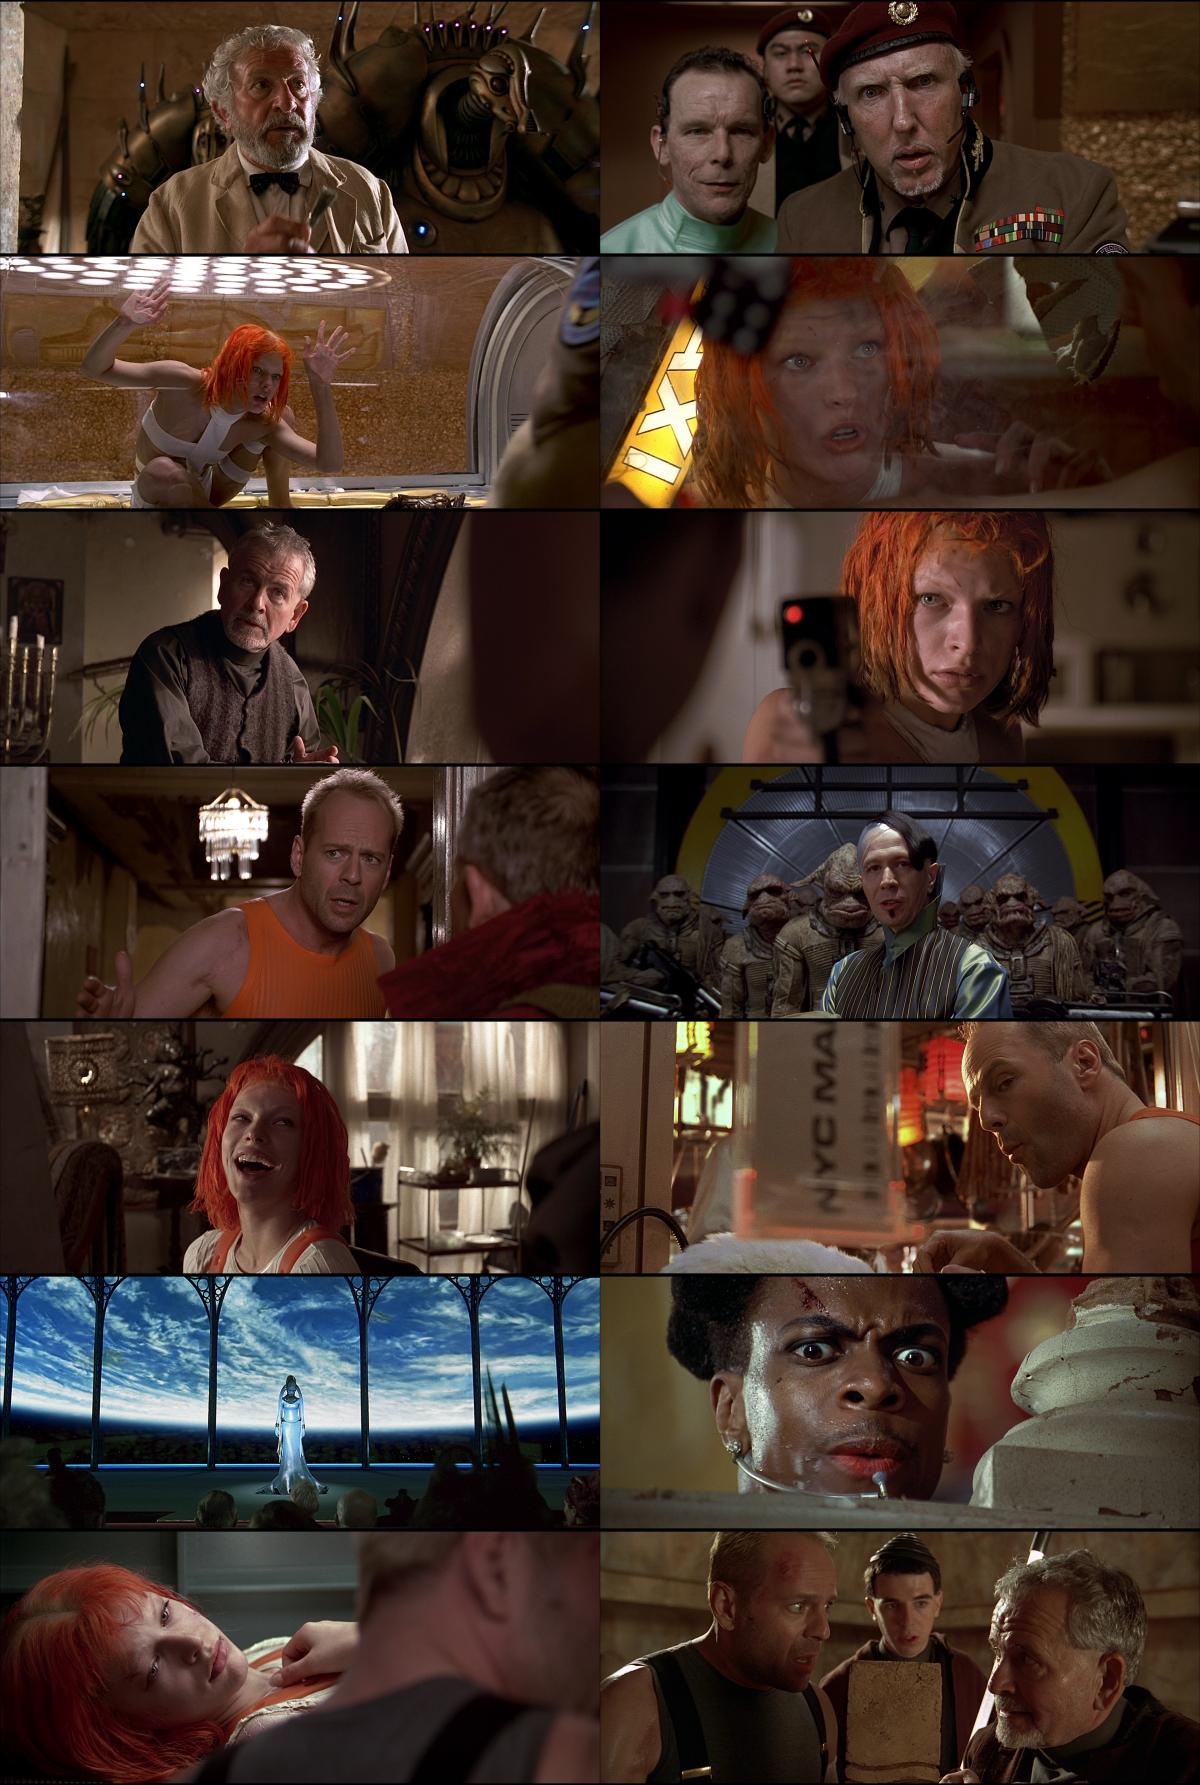 http://watershade.net/public/fifth-element.jpg